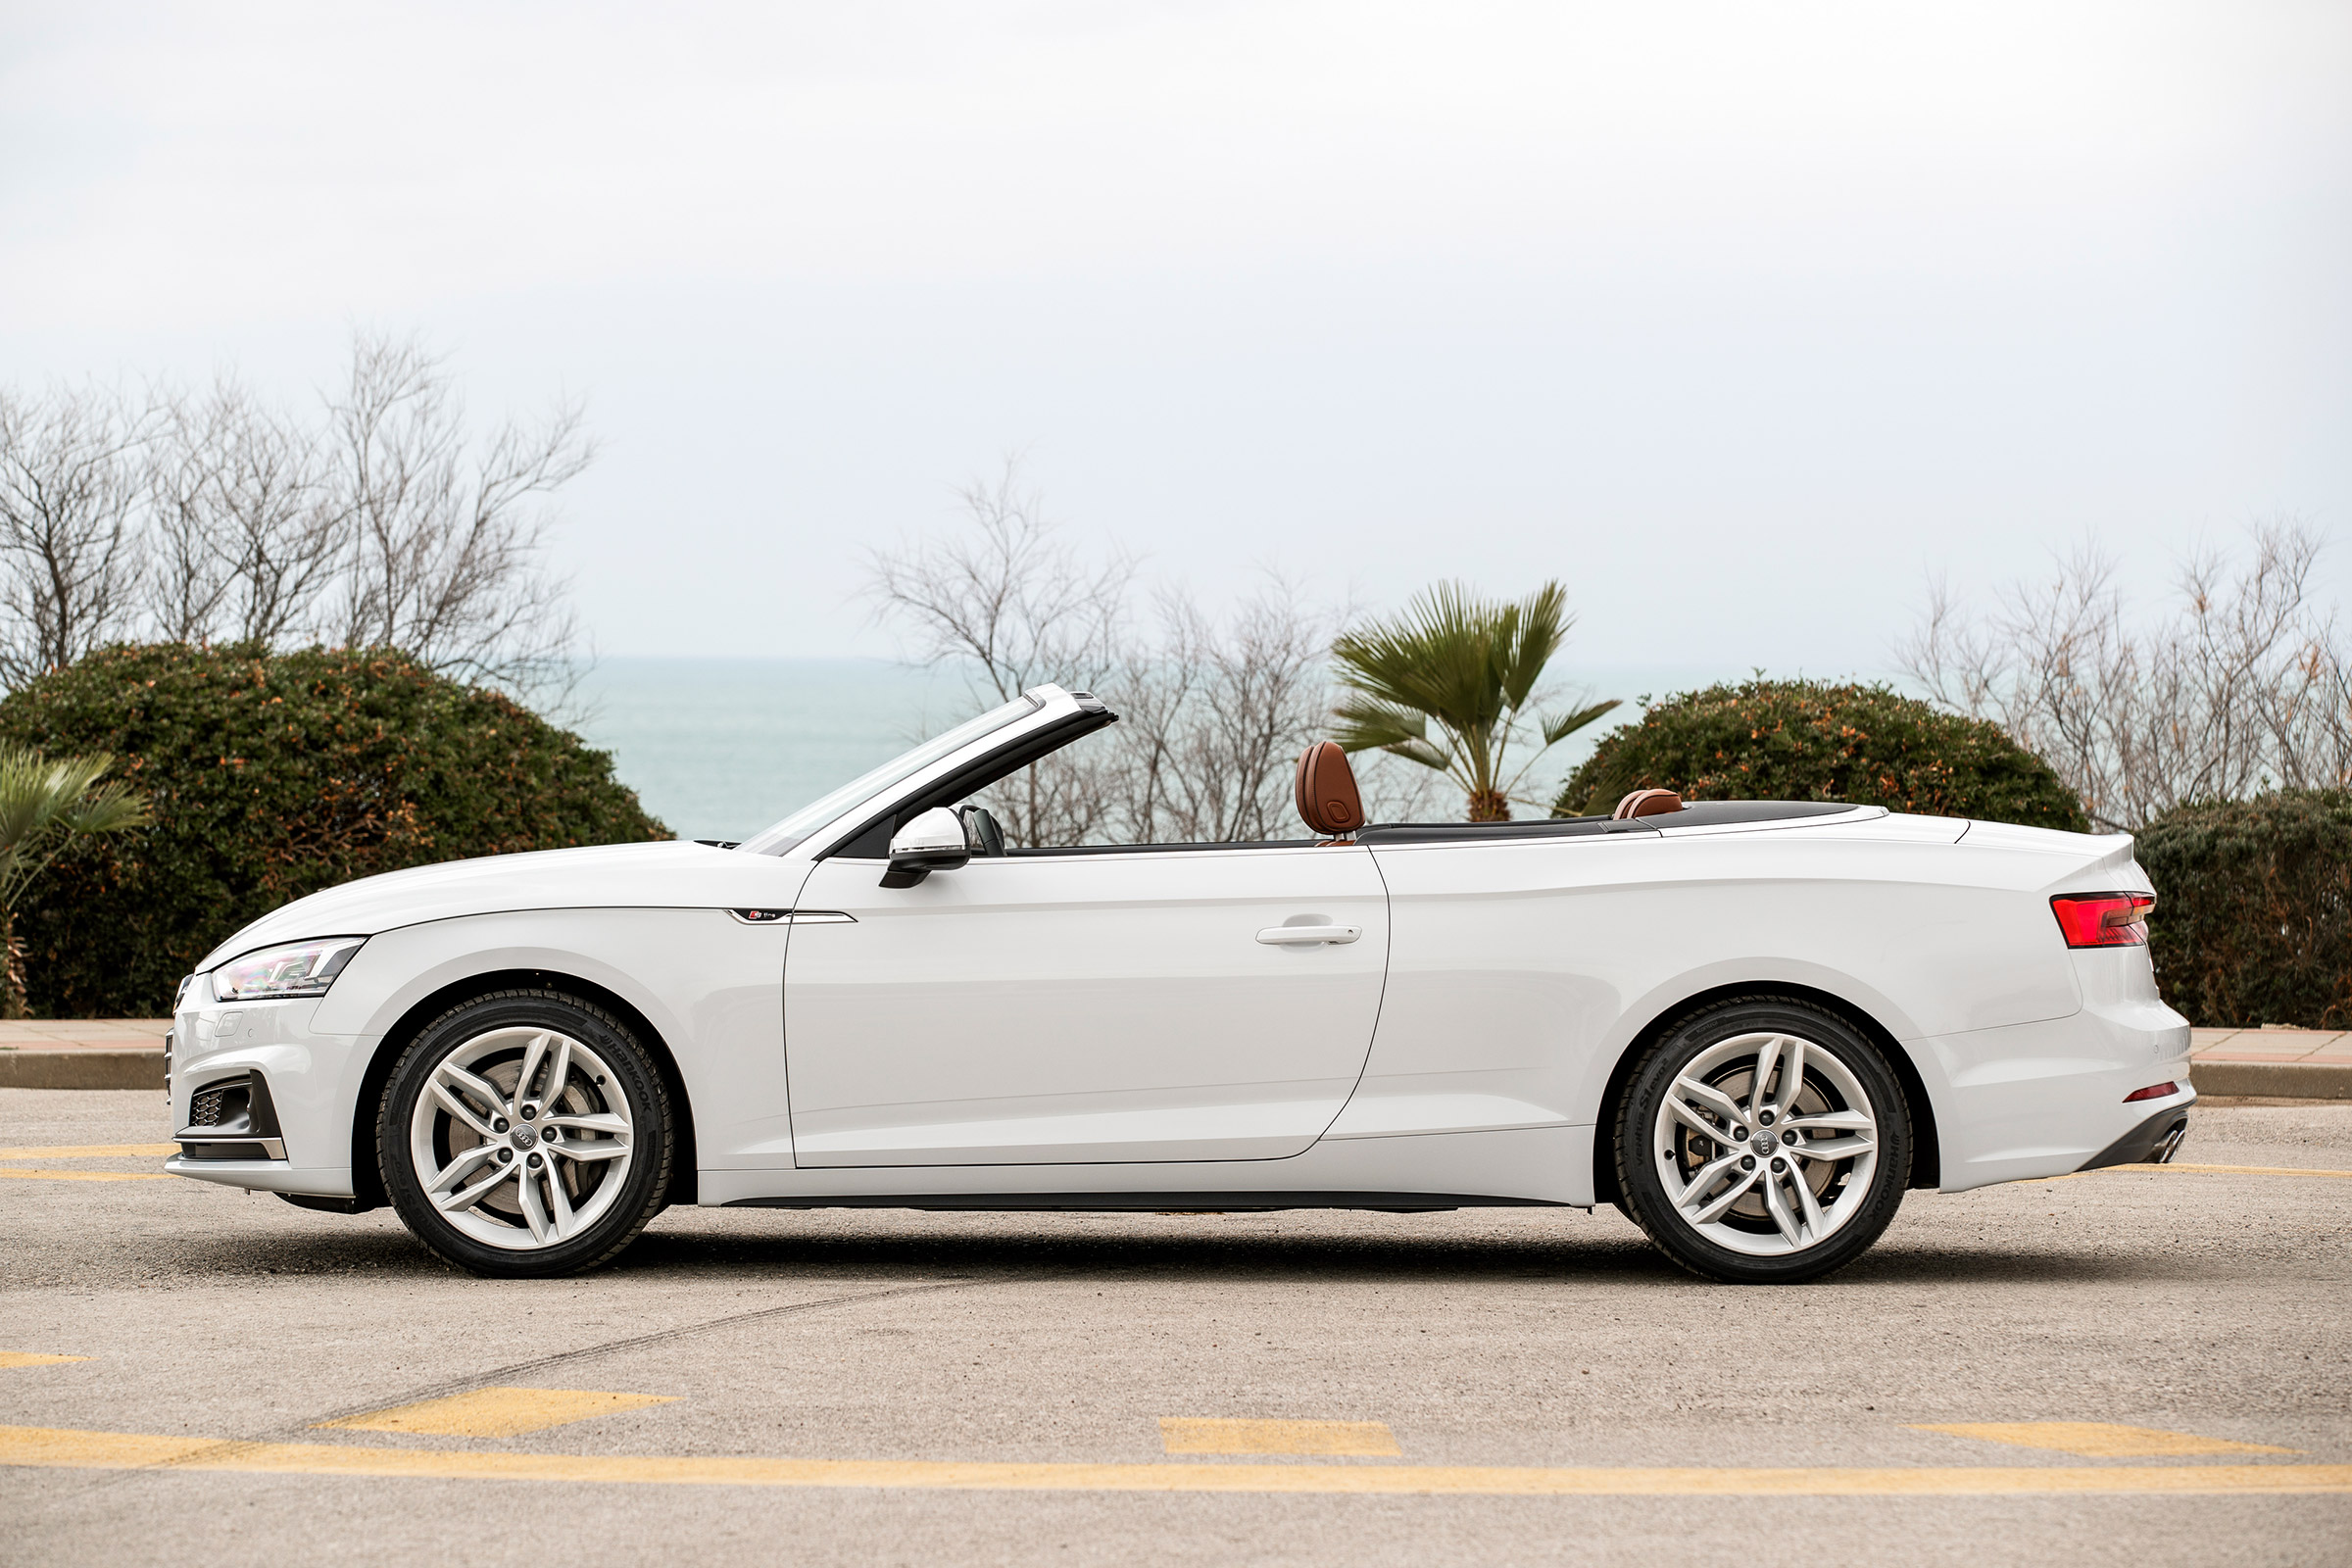 2017 Audi A5 Cabriolet Exterior White Side Roof Open (Photo 7 of 18)